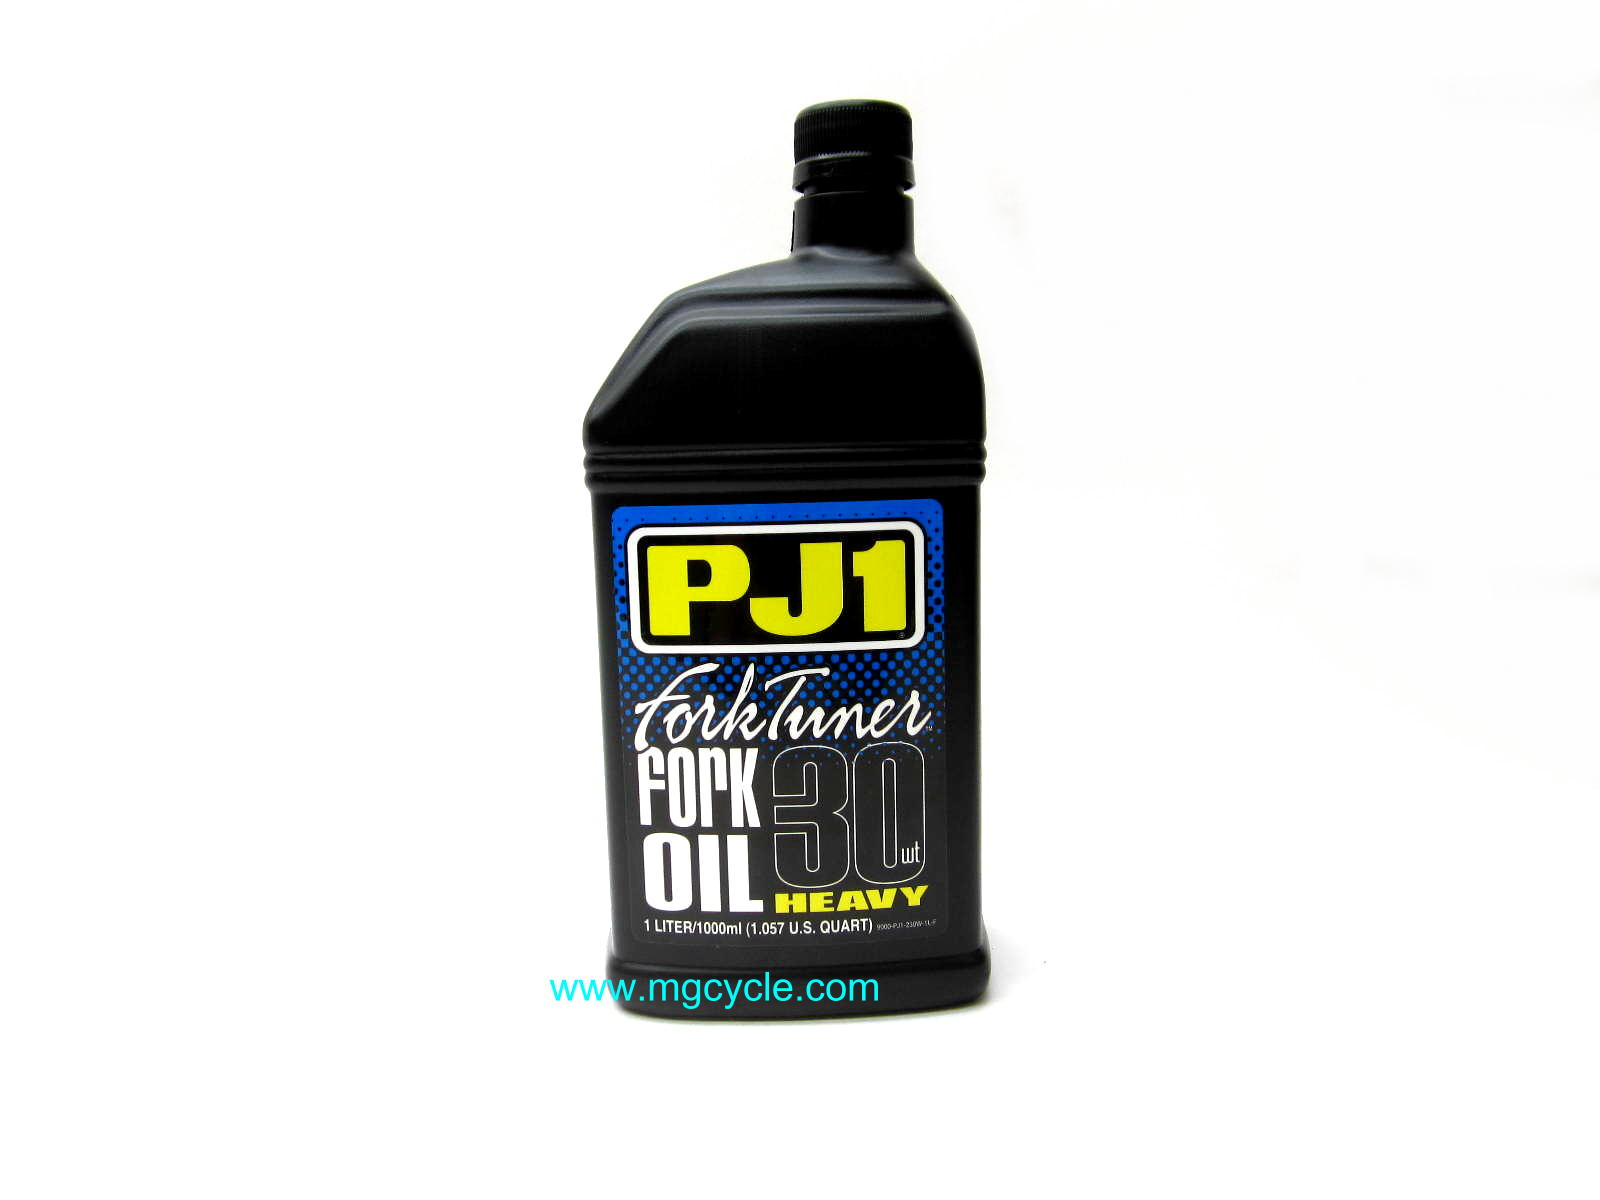 PJ1 Fork Tuner fork oil 30W heavy, 1 liter bottle